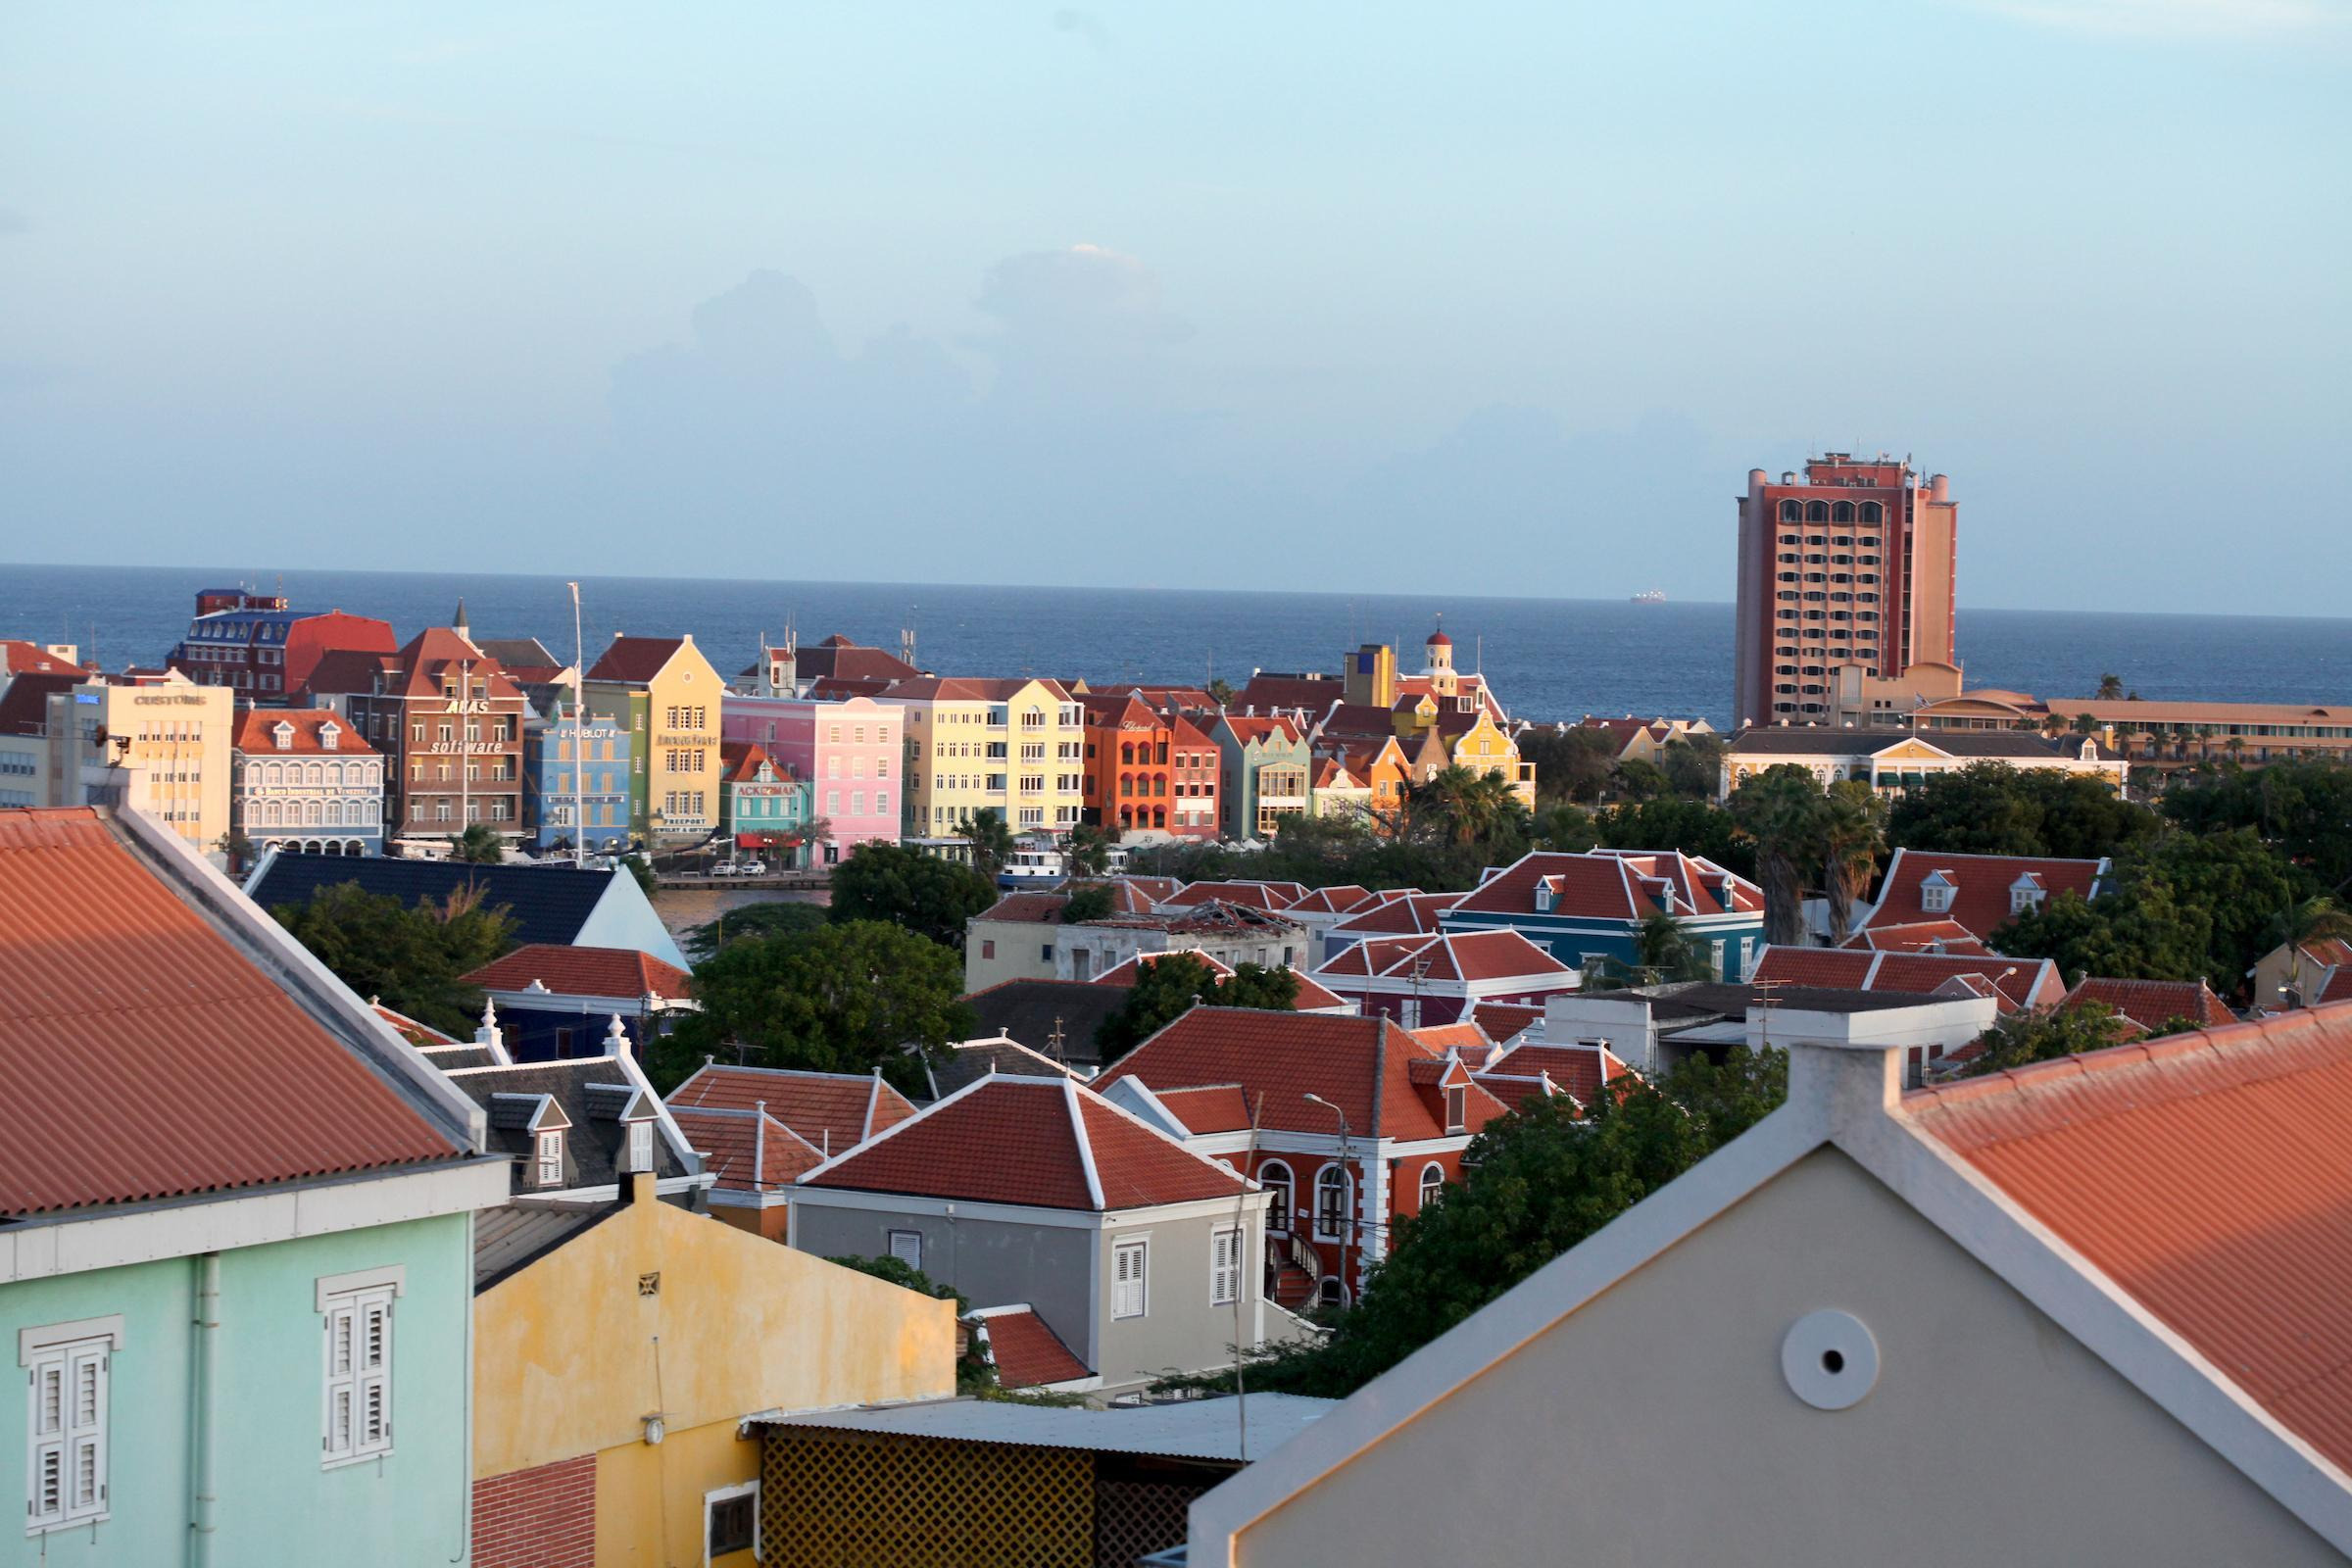 How to Spend 3 Days in Curacao